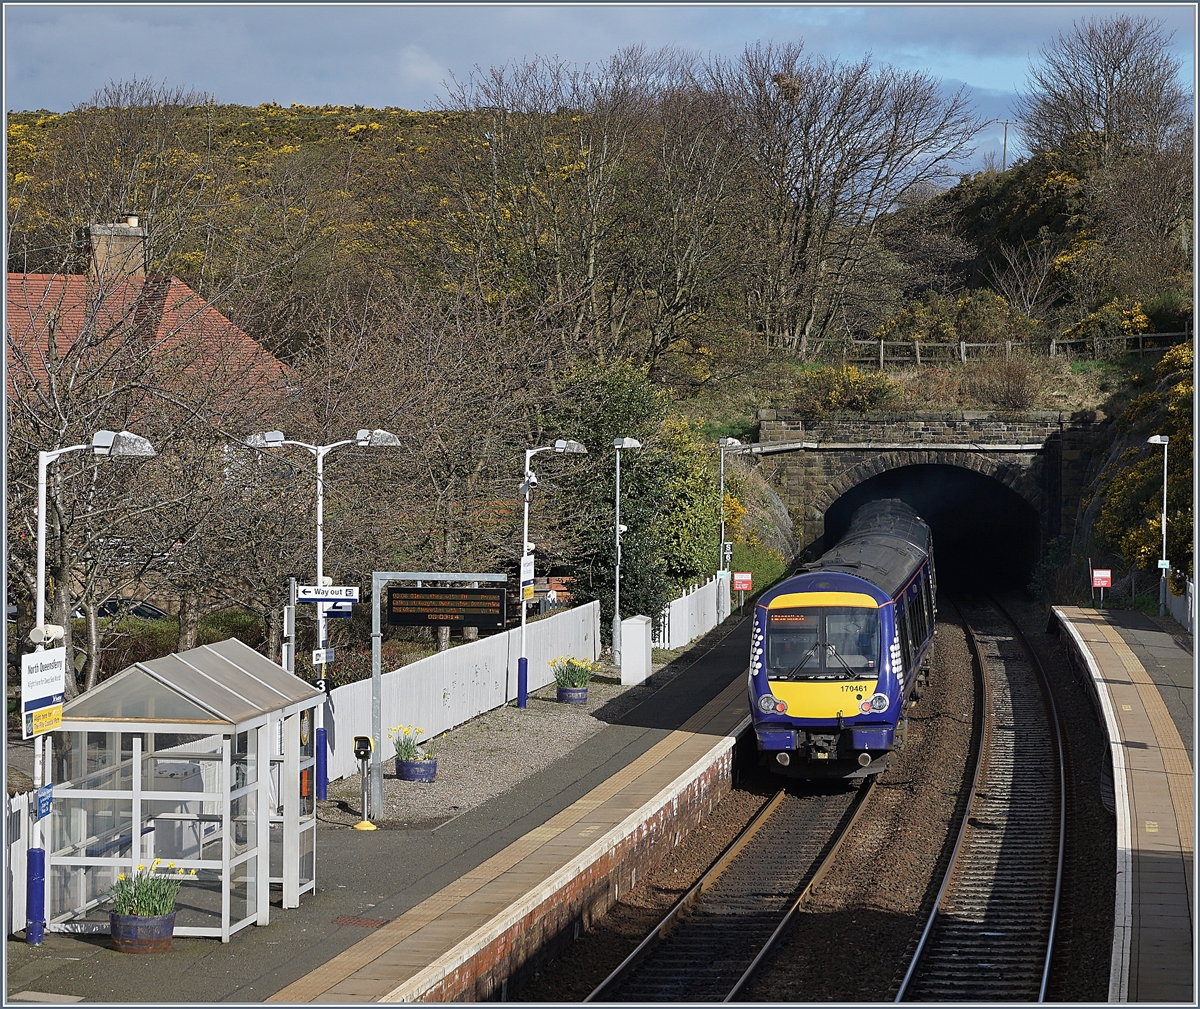 The Scotrail 170461 is leafing Queensferry Nord.